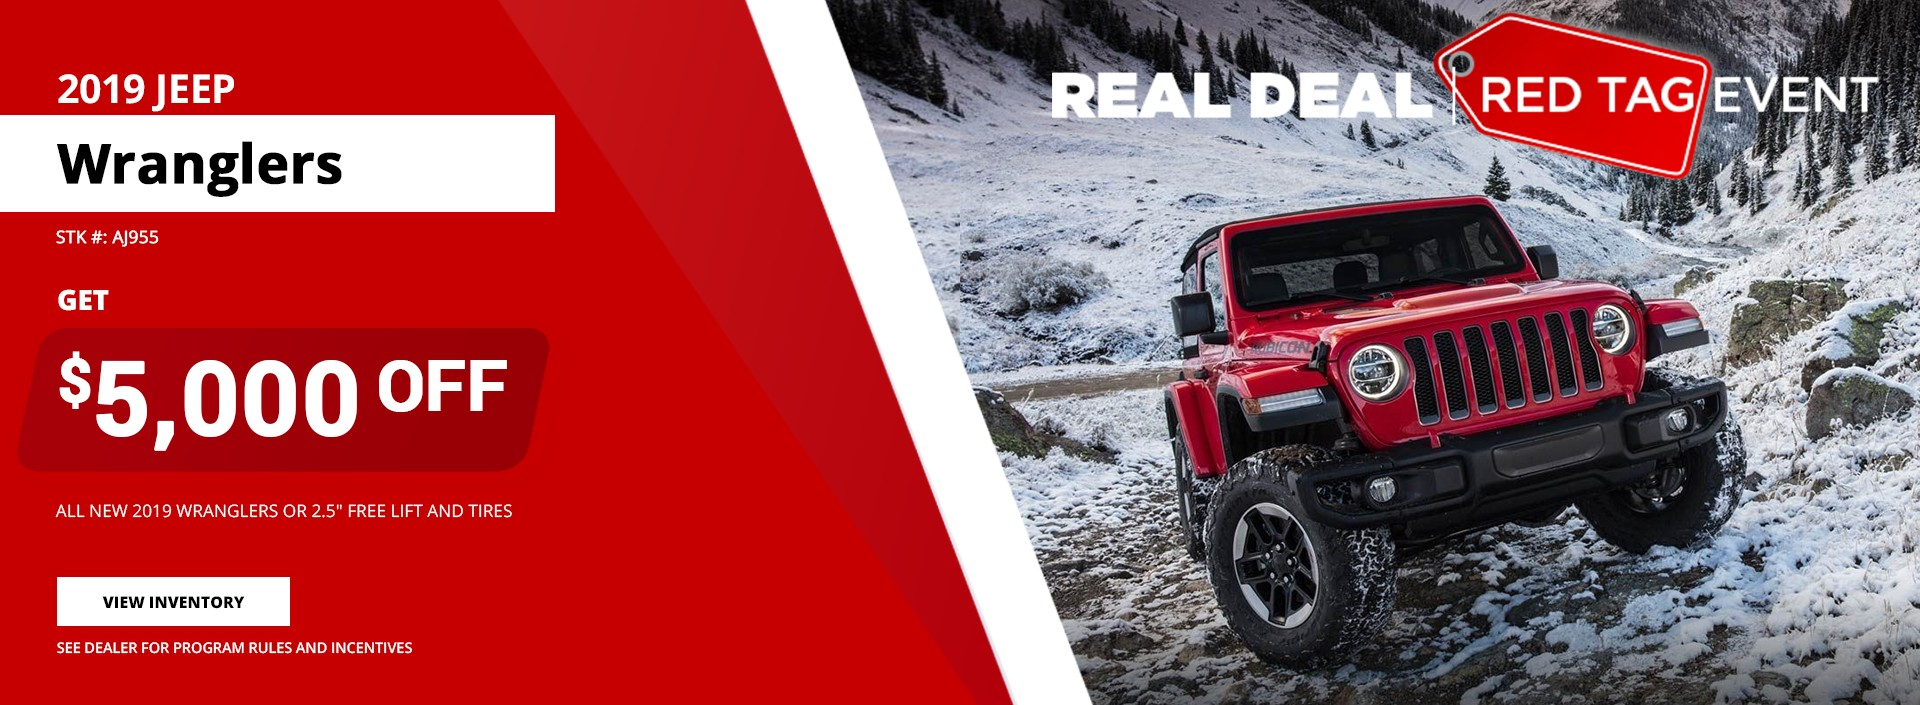 2019 Jeep Wranglers - Red Tag Event